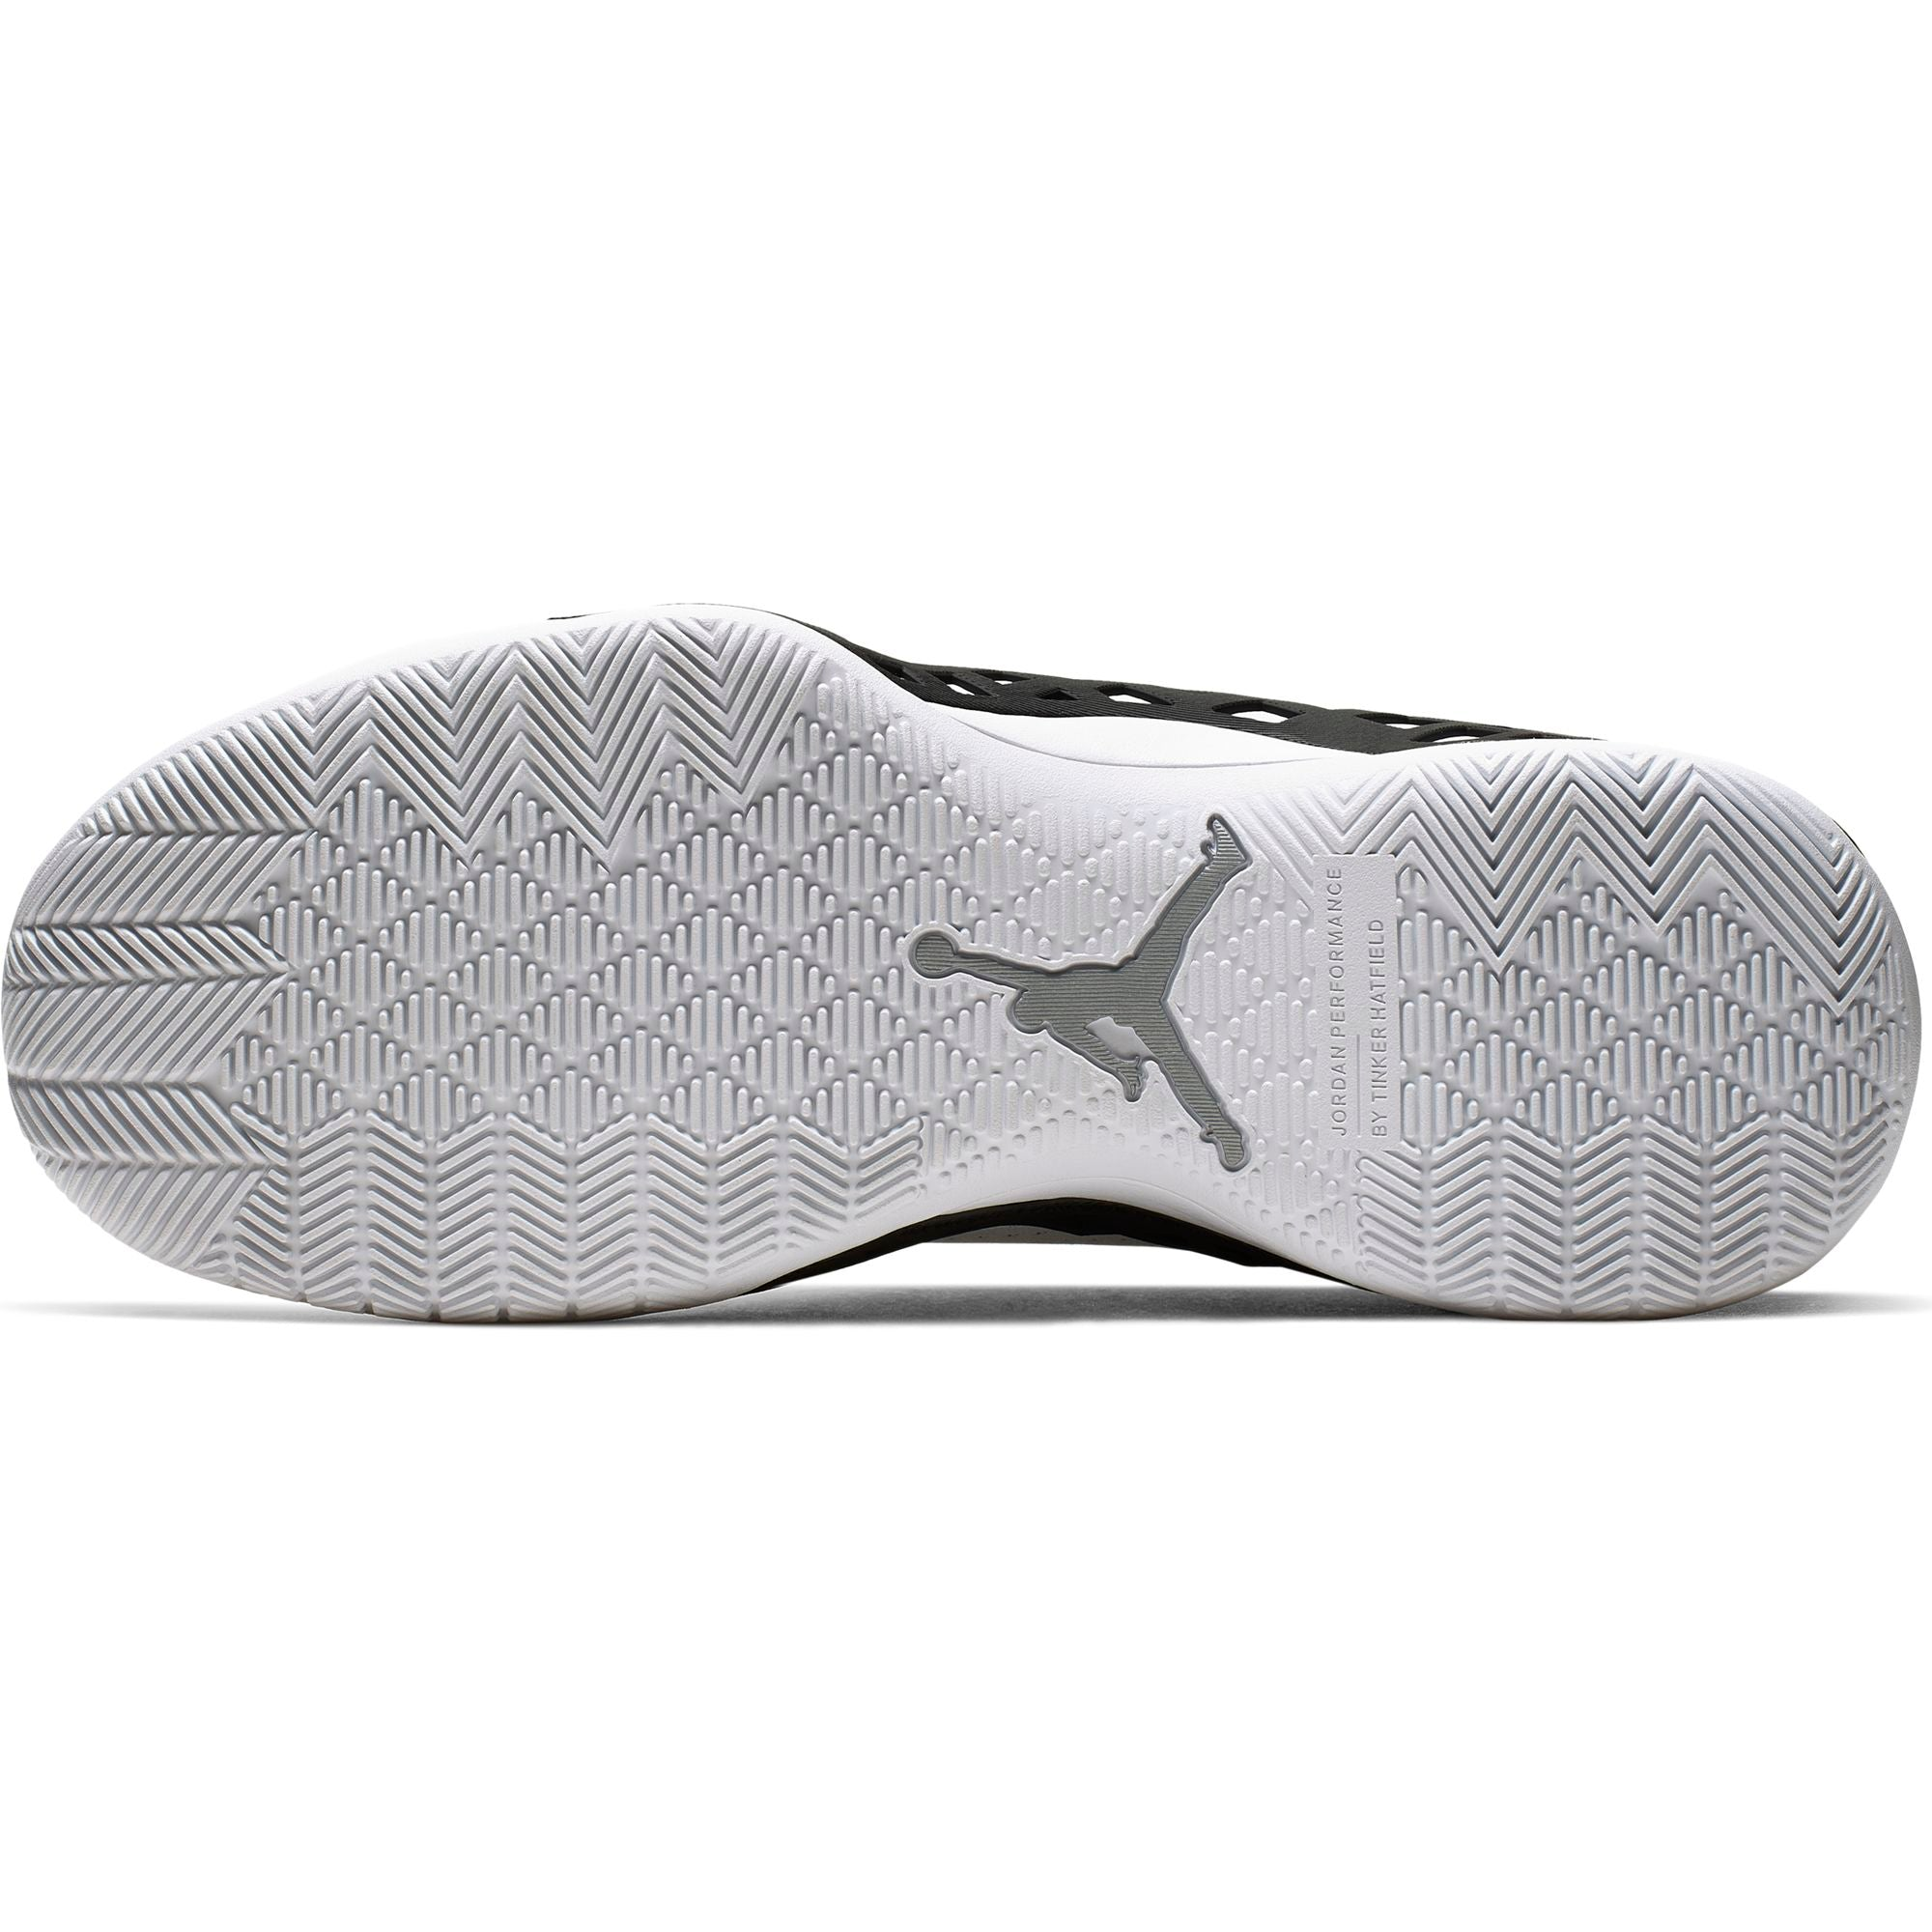 Nike Jordan Jumpman Diamond Mid Basketball Boot/Shoe - White/Metallic Silver/Black